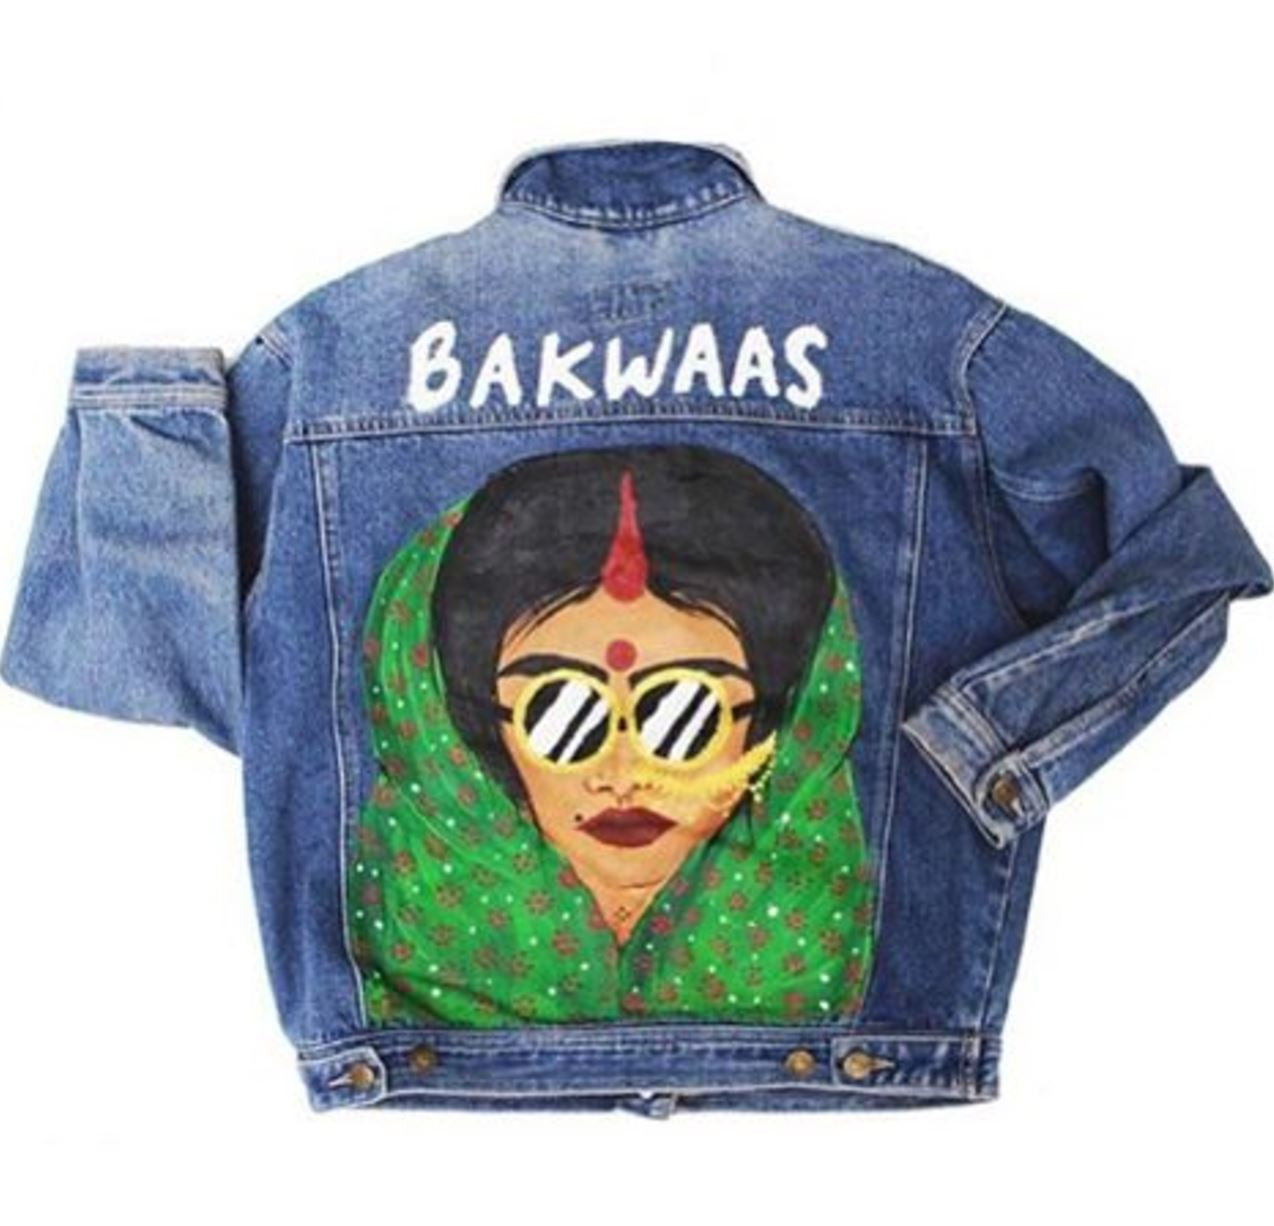 BAKWAAS JACKET - Babbuthepainter